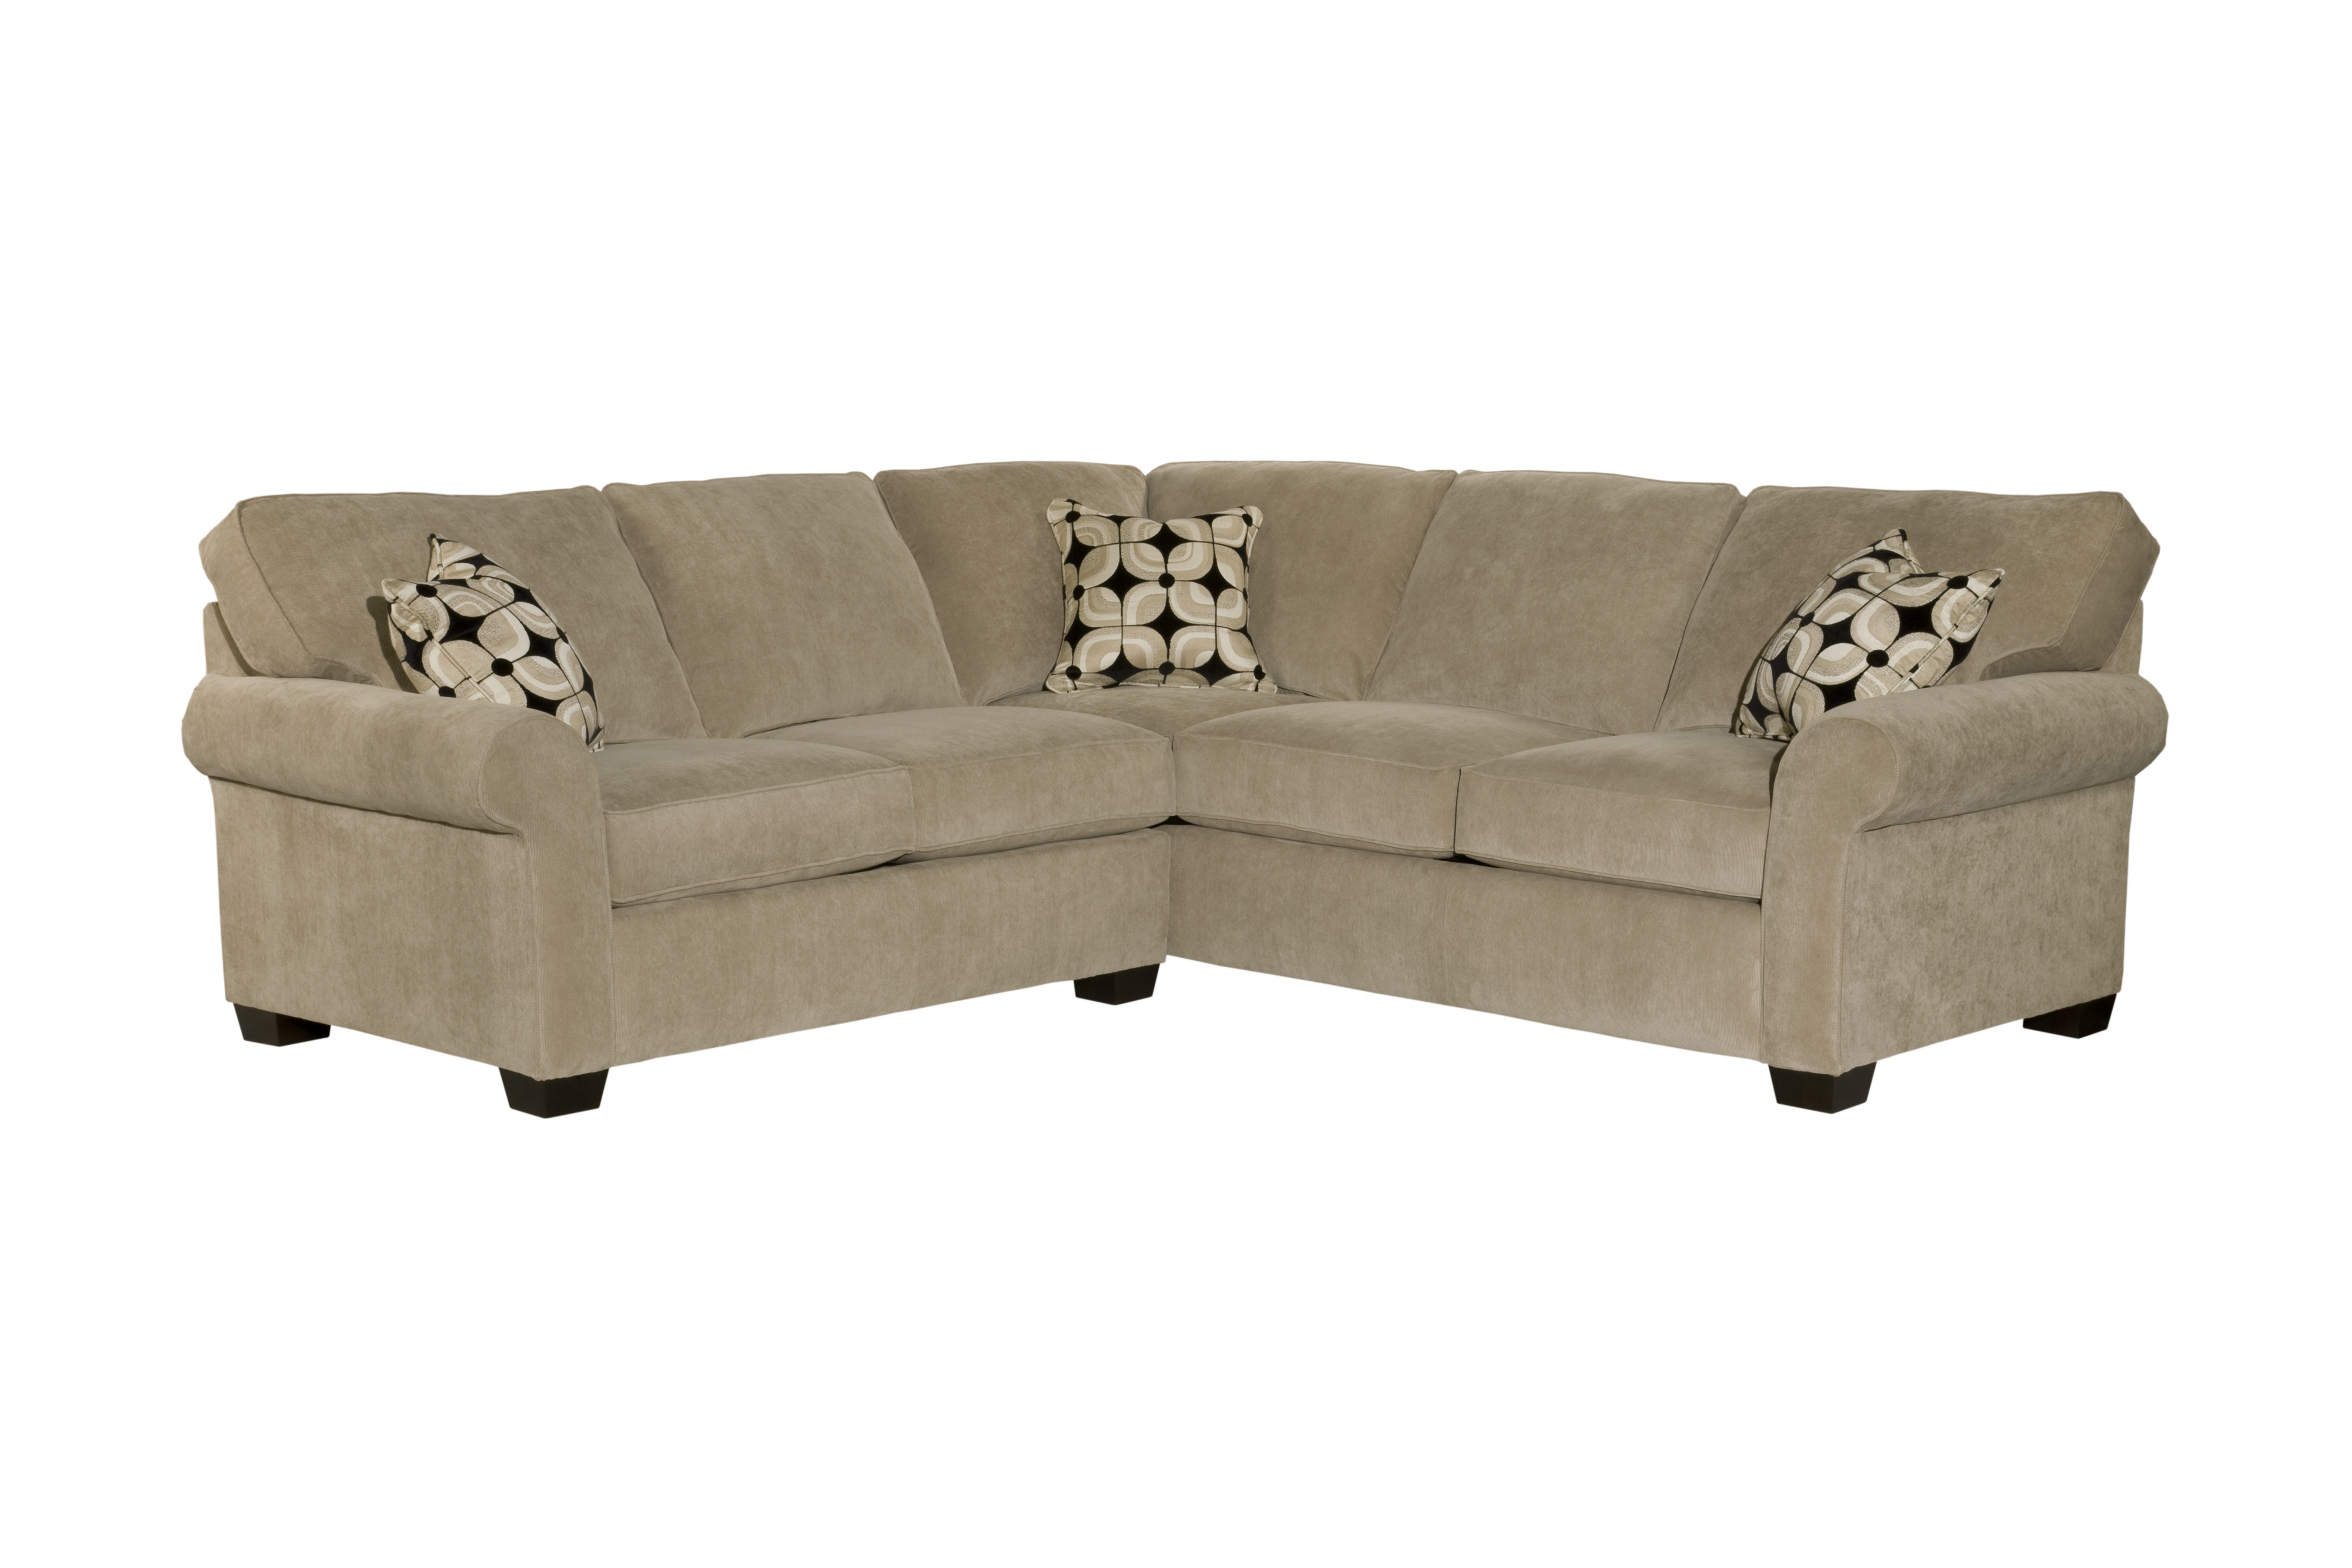 Broyhill Brown Corduroy Sofa Ethan 6628 Sectional Customize 350 Sofas And Sectionals